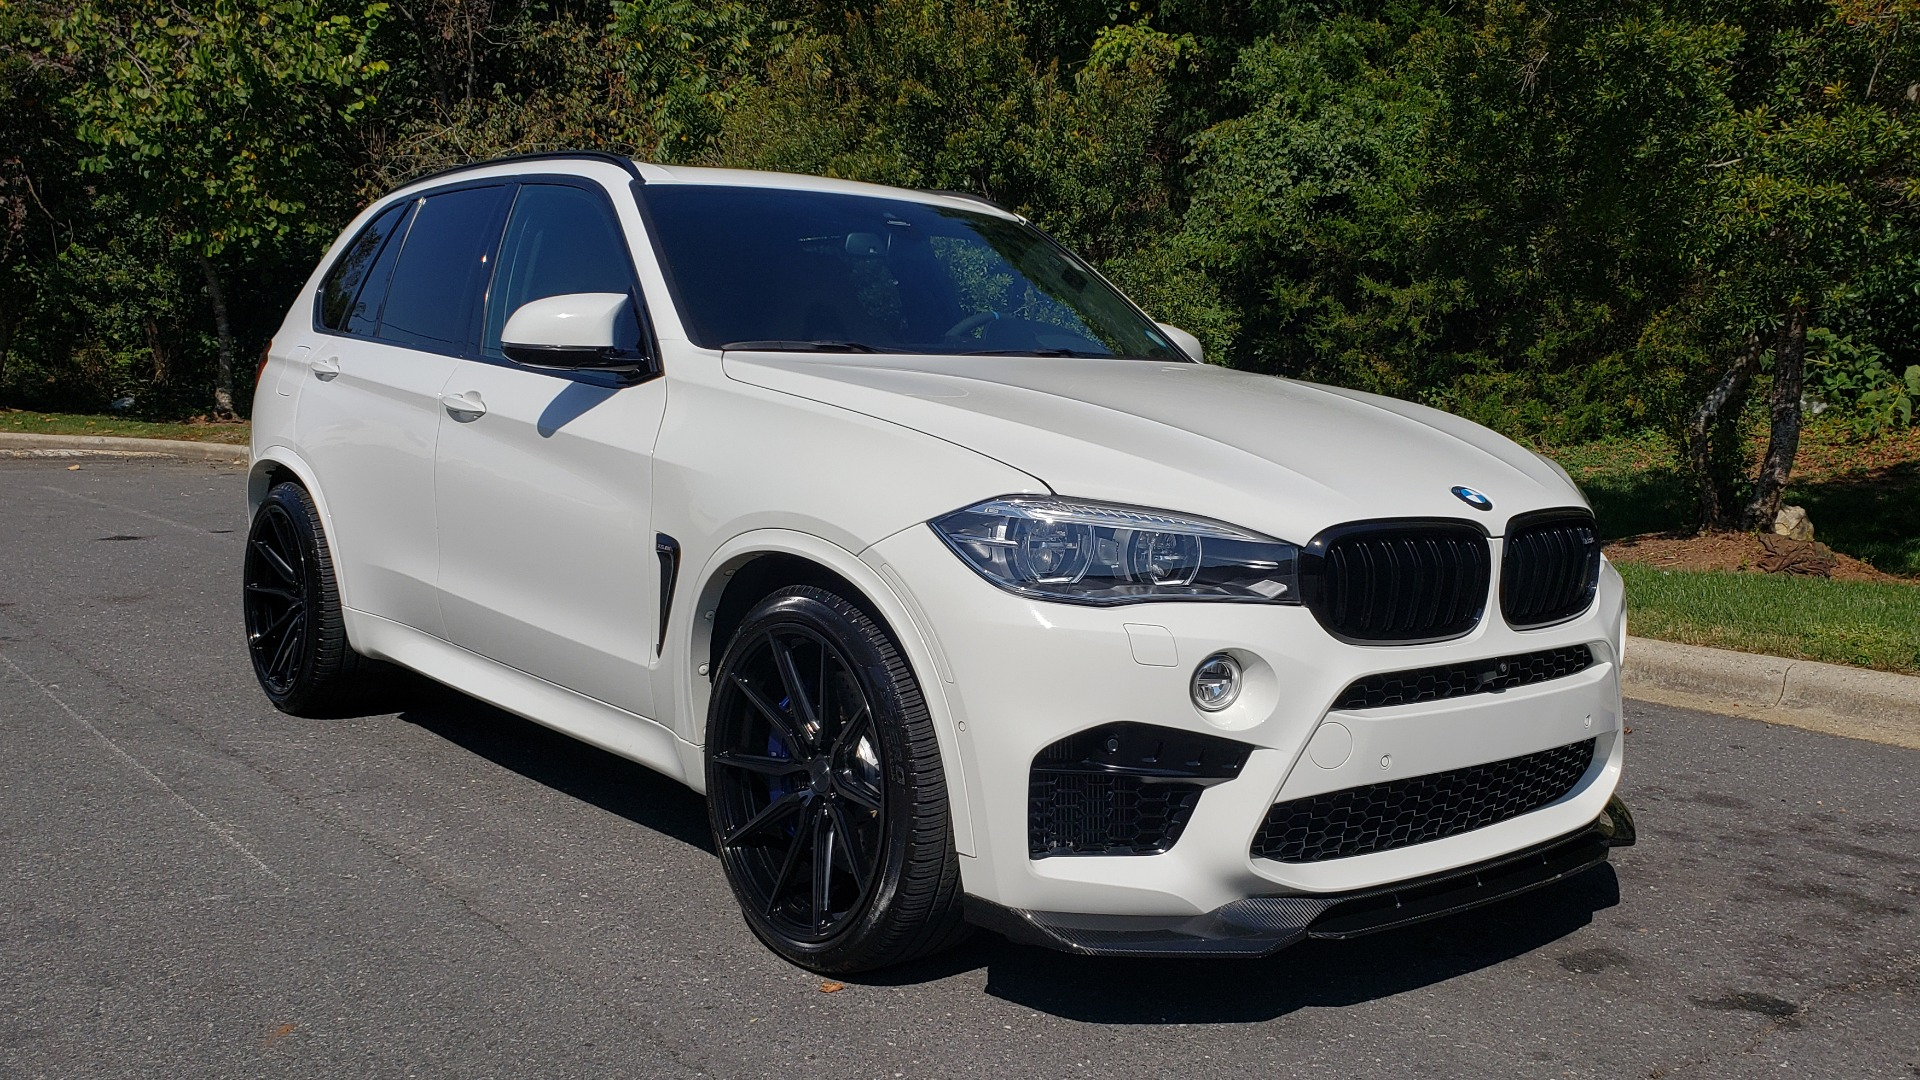 Used 2017 BMW X5 M SPORT / AWD / DRVR ASST / EXEC PKG / B&O SND / NIGHT VIS / PARK ASST for sale Sold at Formula Imports in Charlotte NC 28227 13